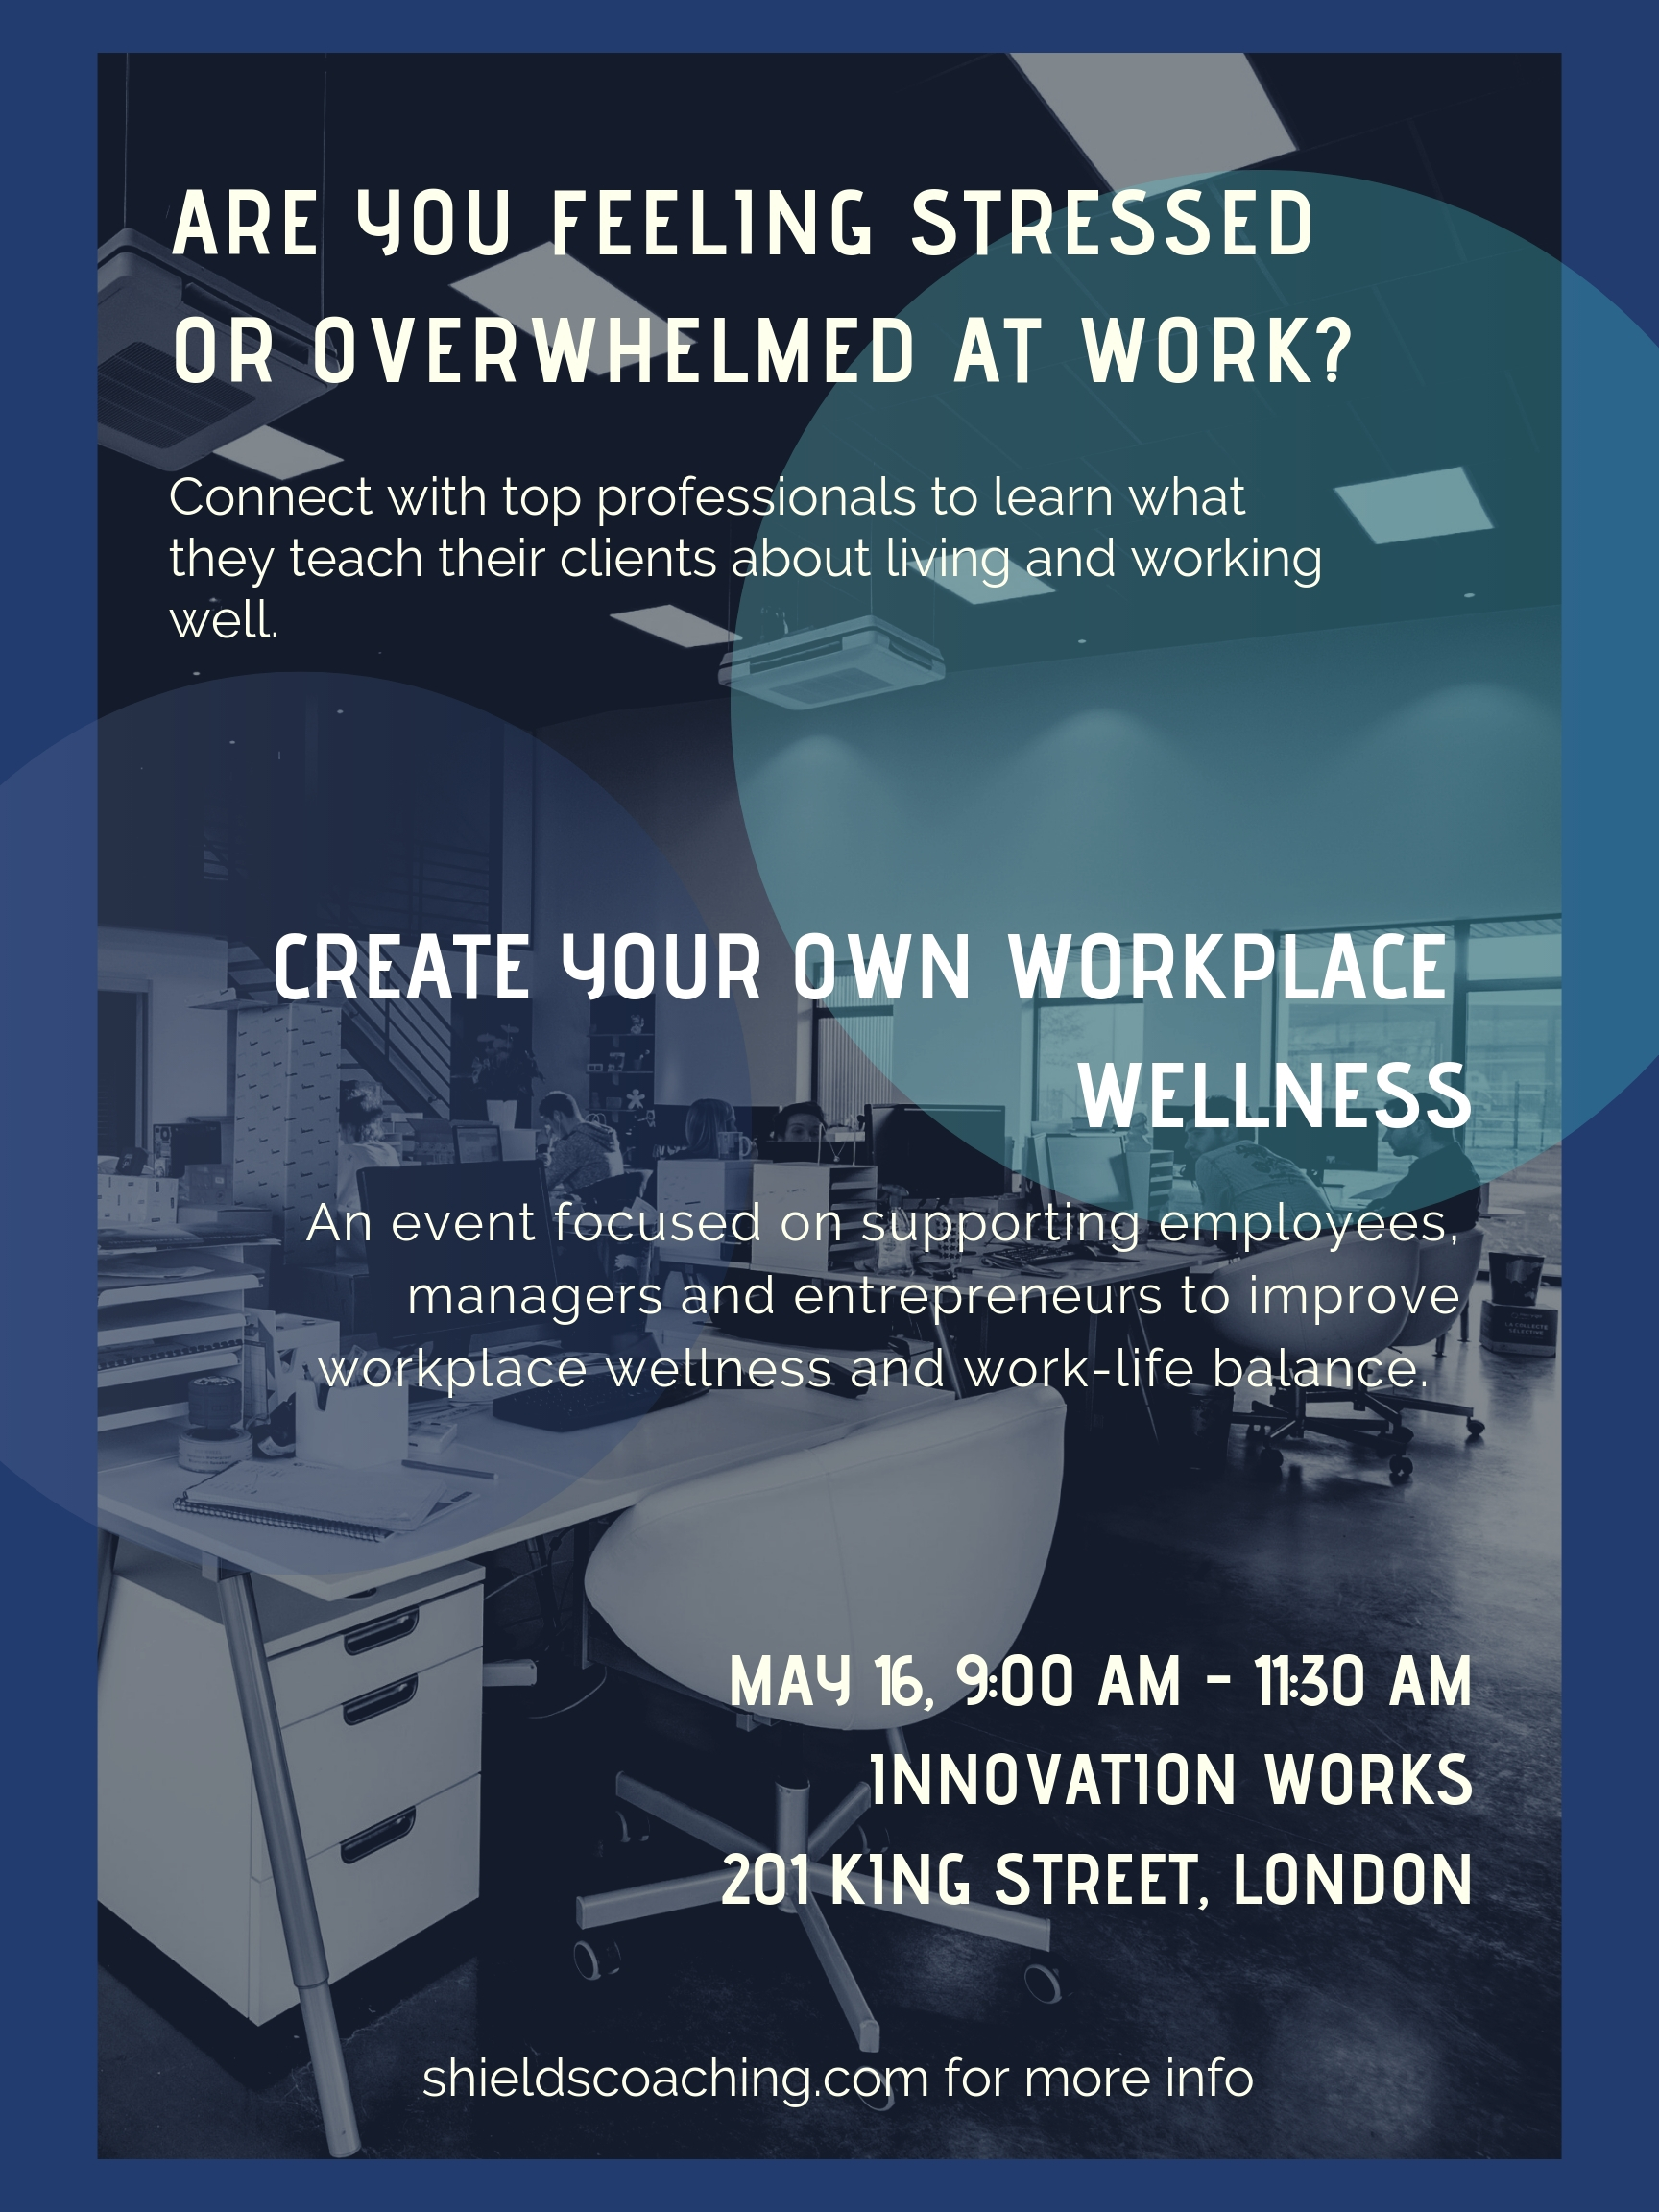 create your own workplace wellness -2.jpg